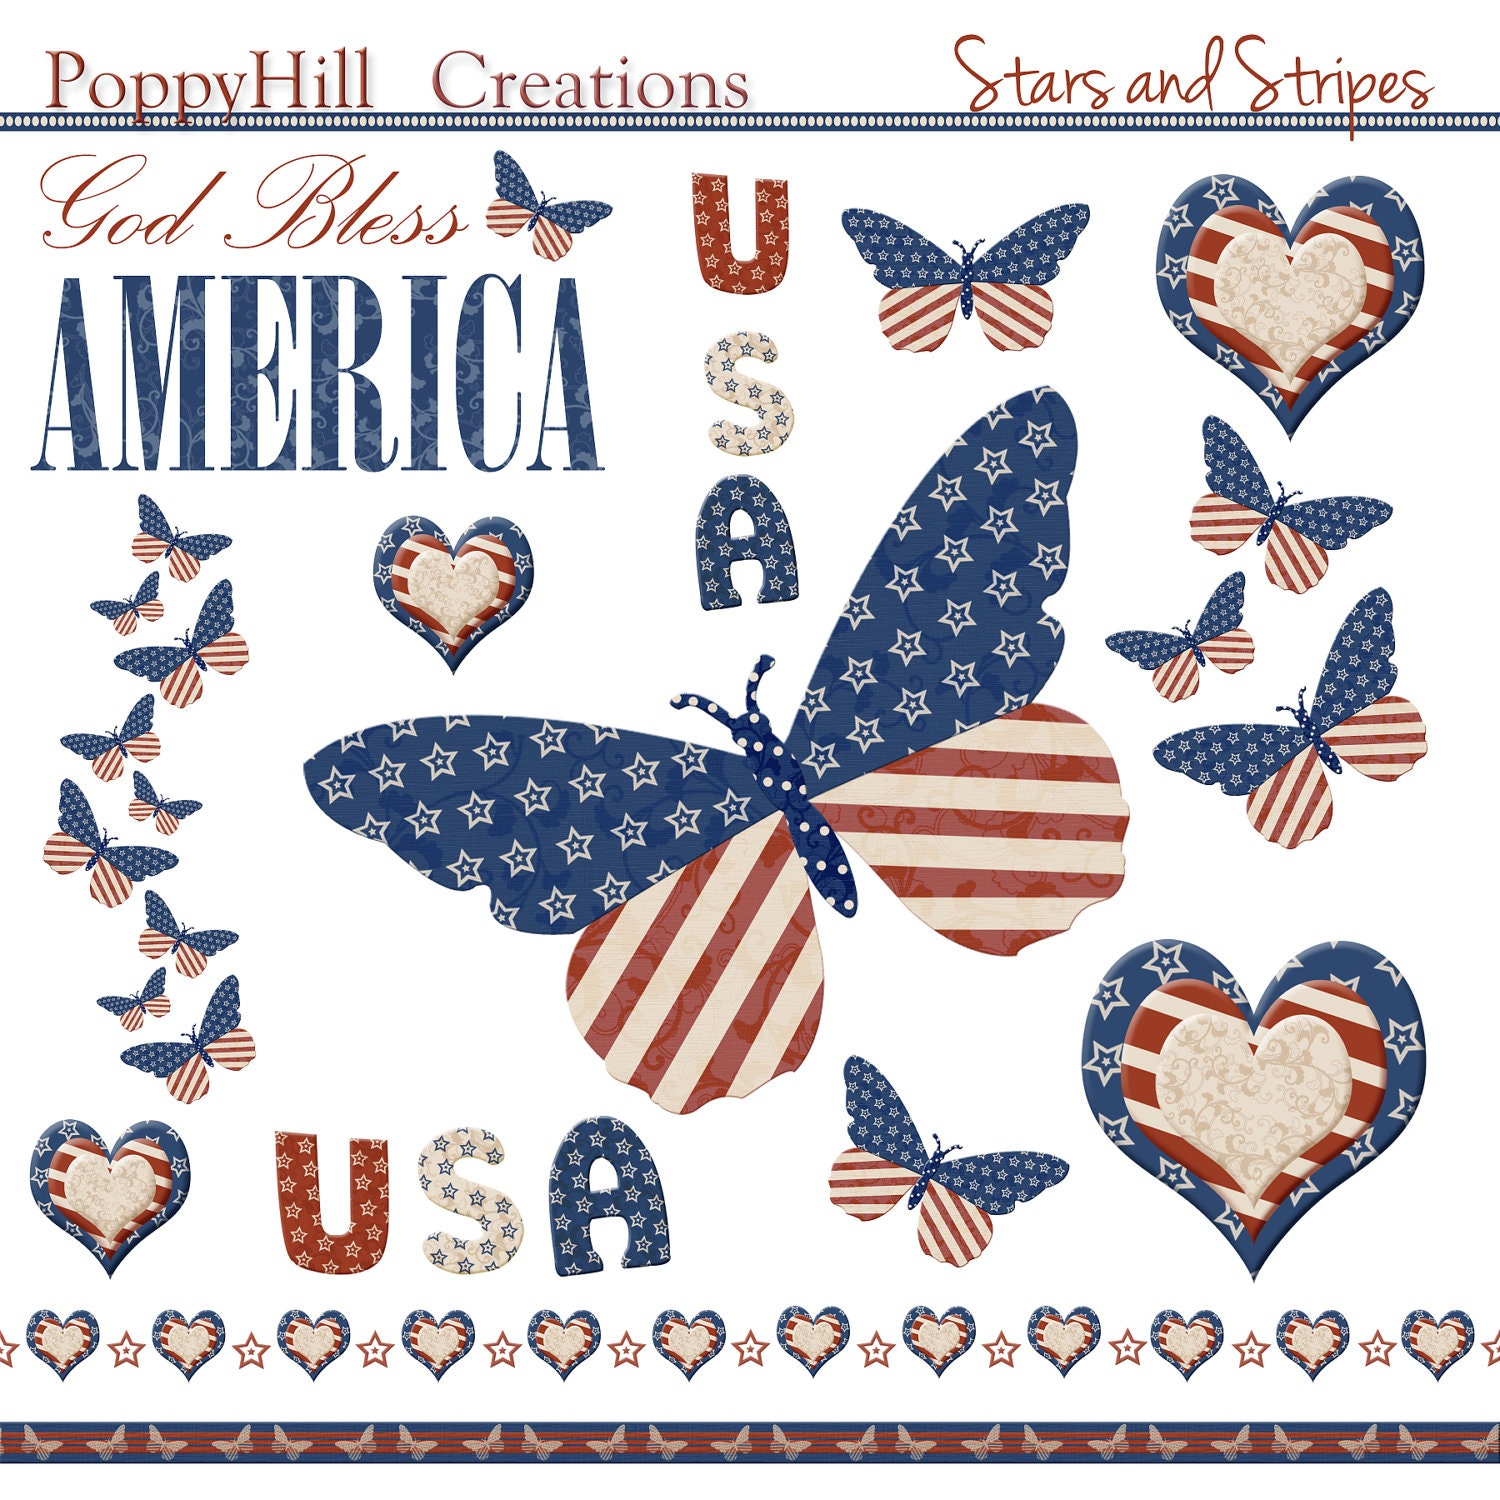 INSTANT DOWNLOAD - Stars and Stripes Patriotic Digital Clip Art Set - Red, White and Blue - For Personal and Commercial Use - PoppyHillCreations